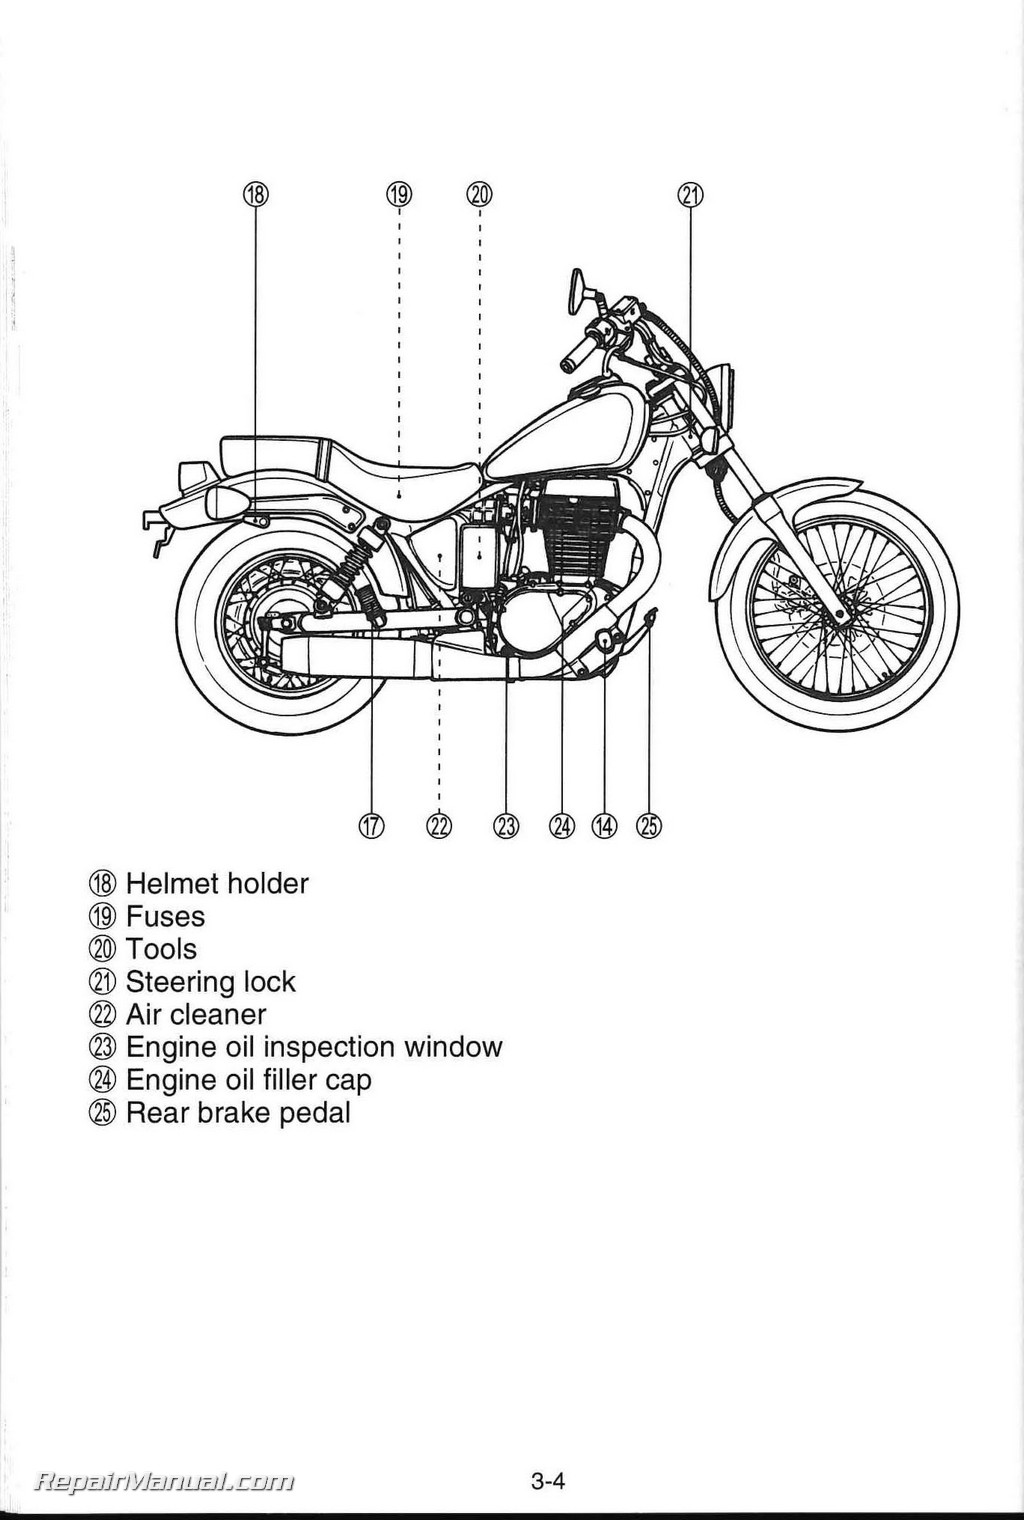 2009 Suzuki Boulevard S40 LS650 Motorcycle Owners Manual